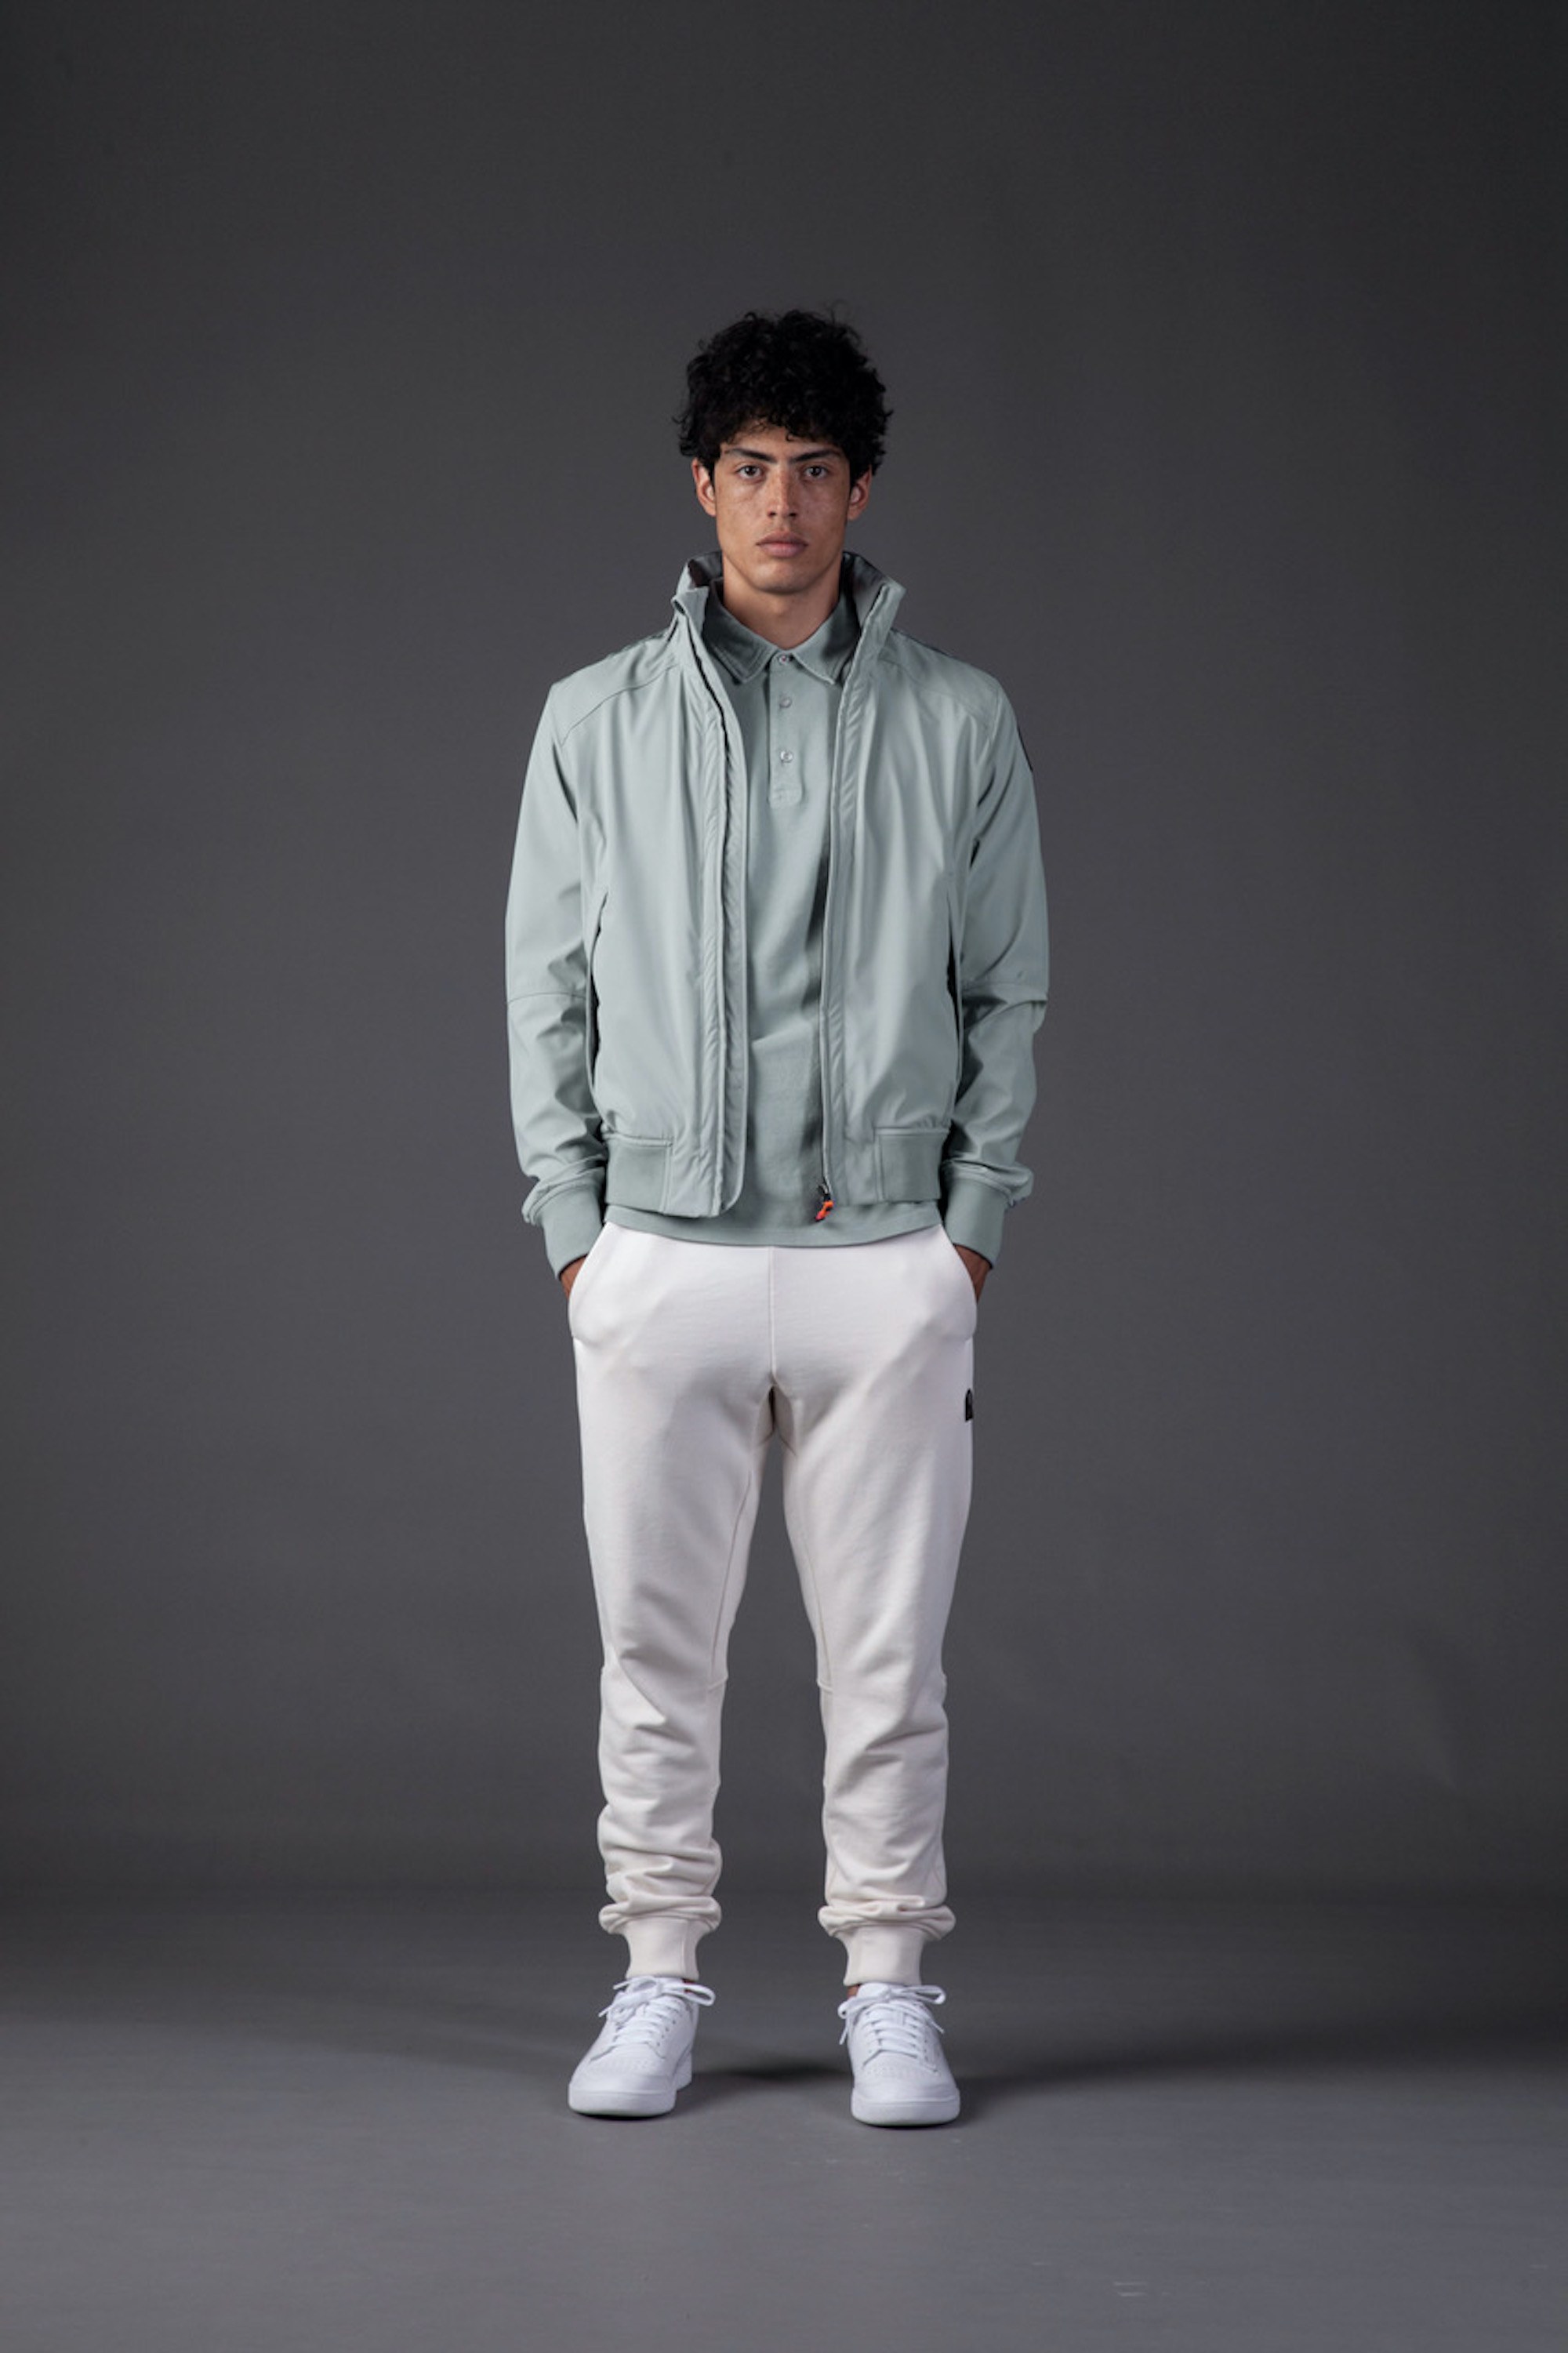 Parajumper SS21 blue jacket and white trousers